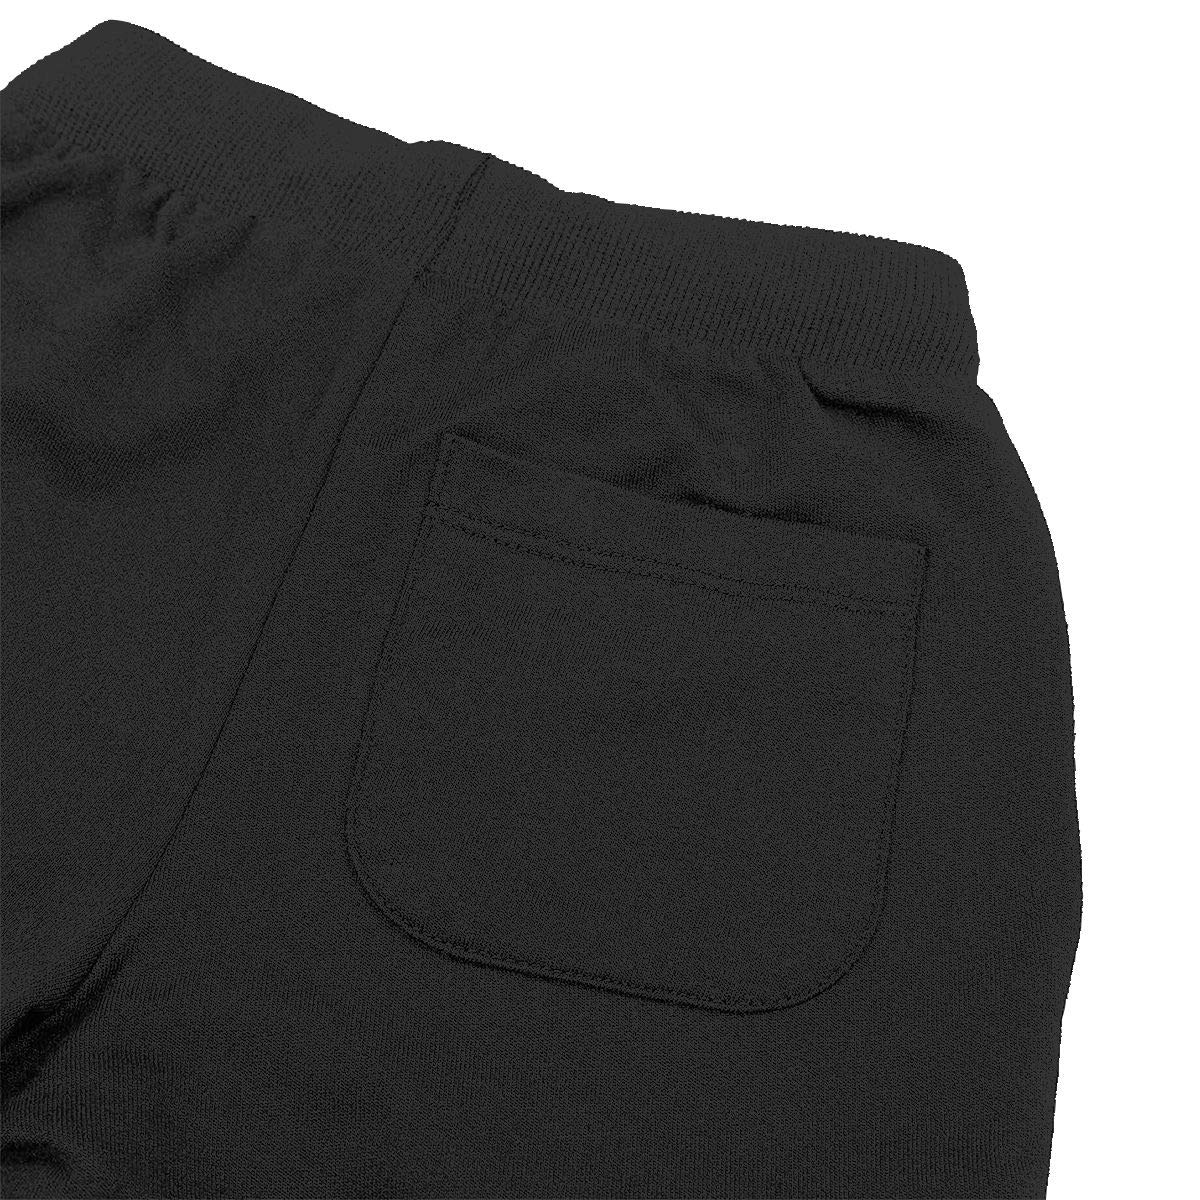 Elastic Snowmobile Cotton Sweatpants for Youth Ji88pX@ Capri Jogger for Youth